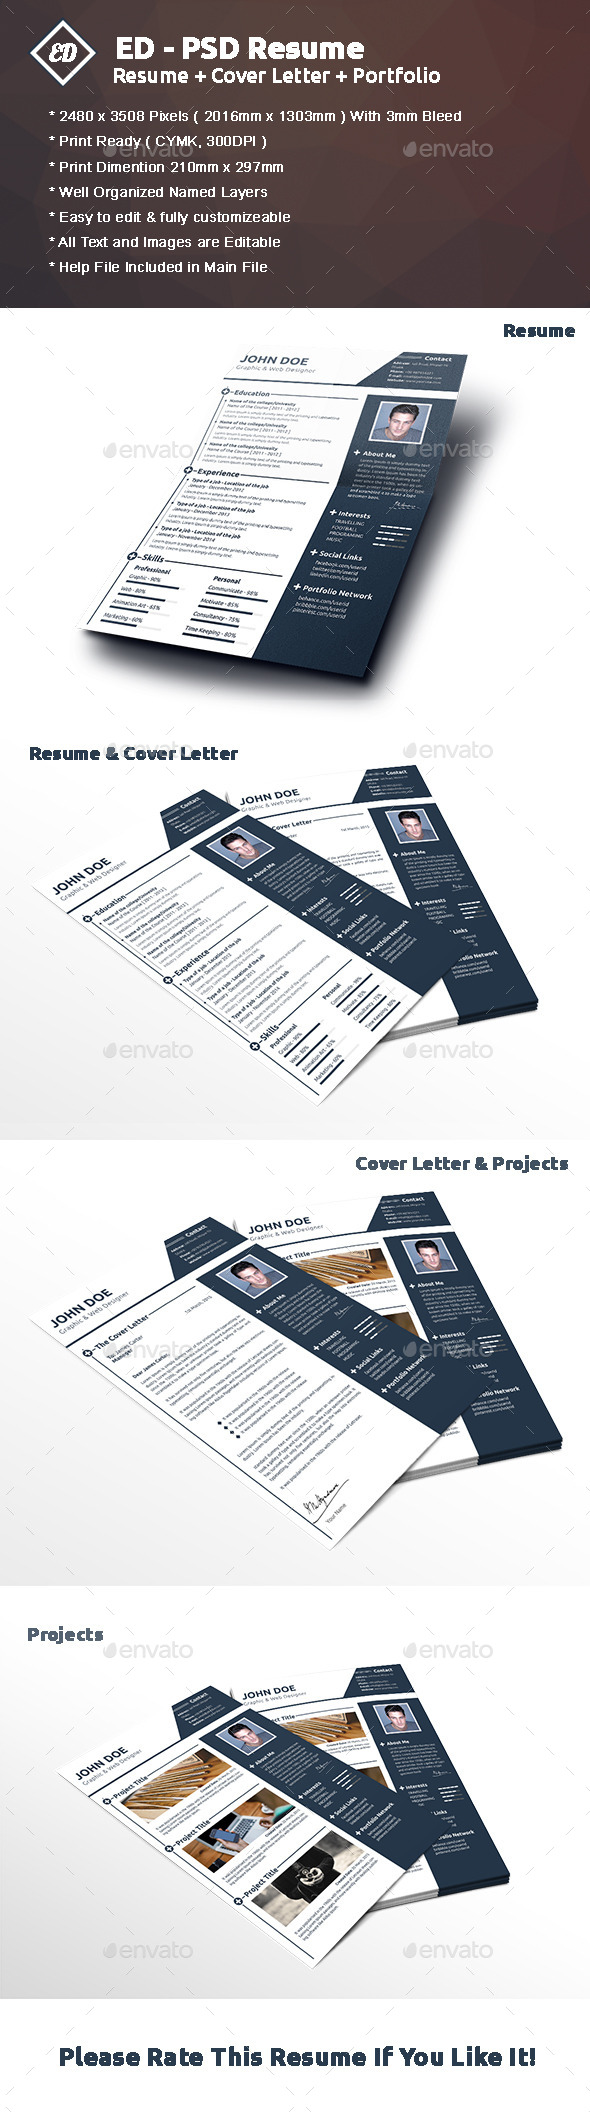 GraphicRiver ED PSD Resume Template 10893057